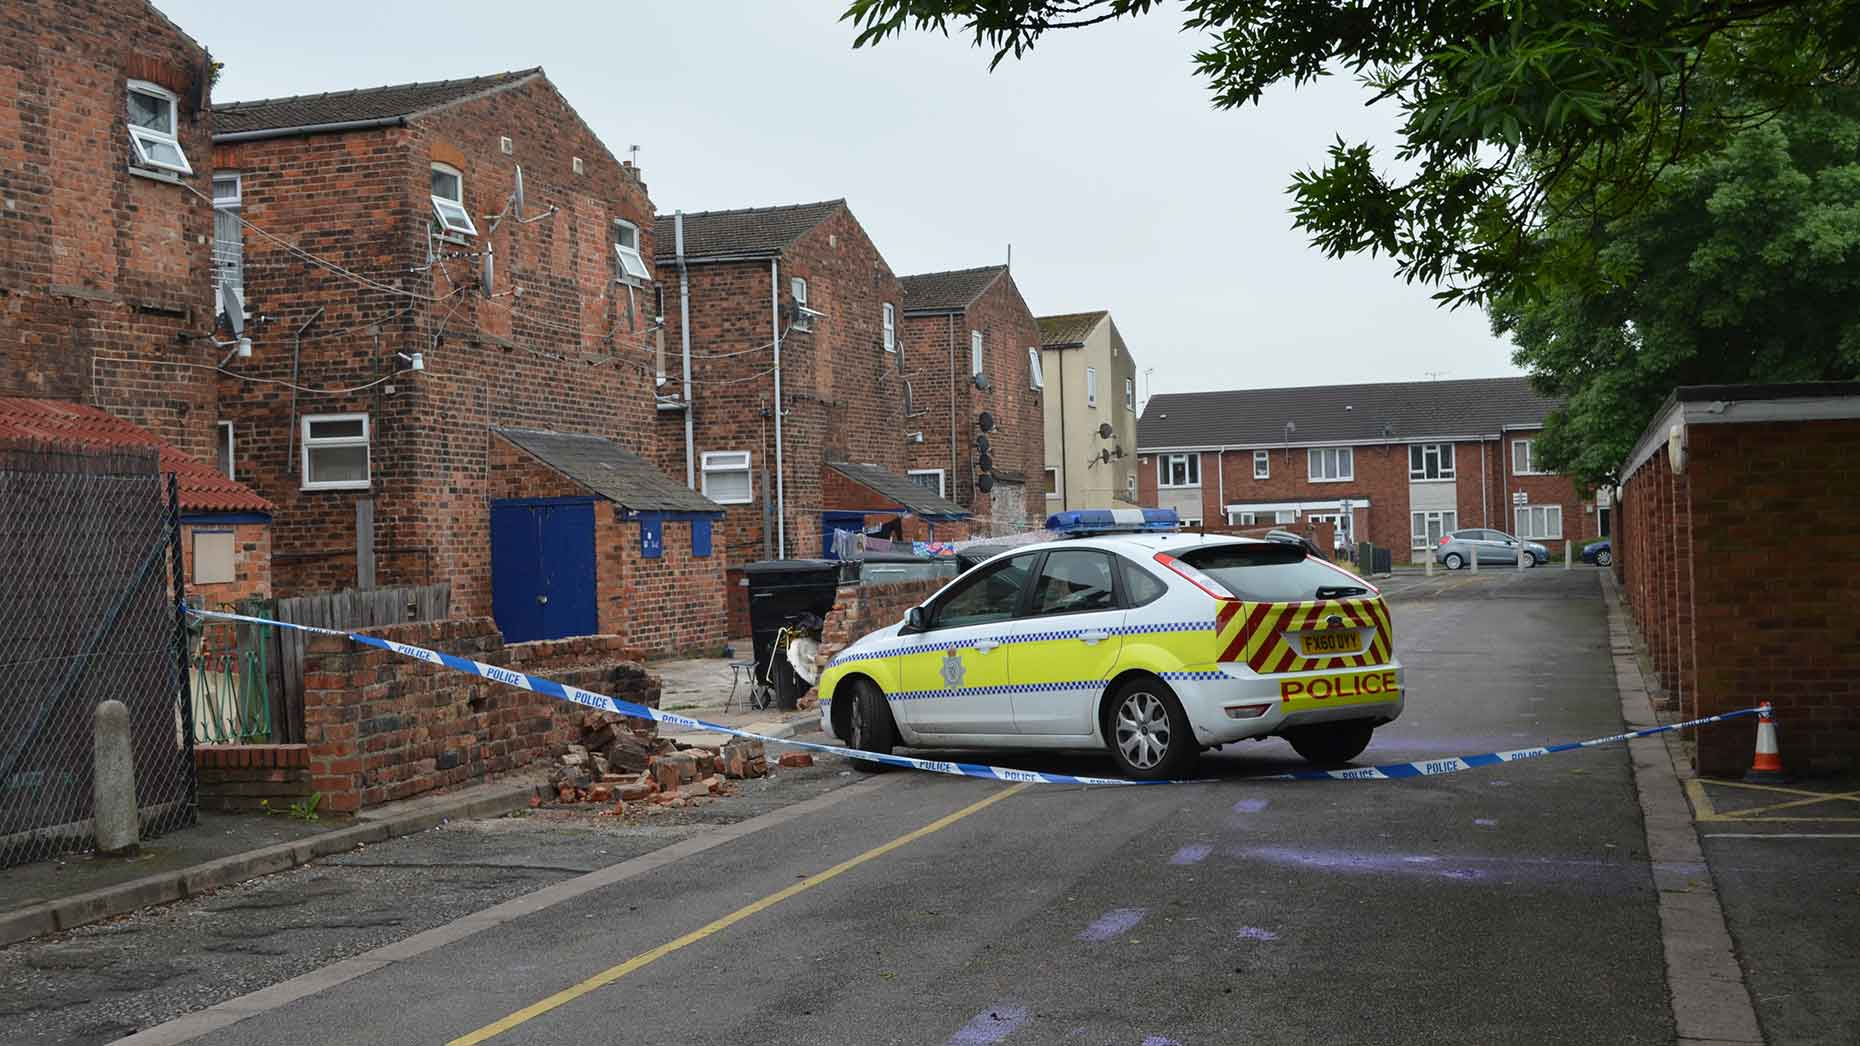 Police officers carry out their enquiries at the back of Portland Street in Lincoln on June 21, 2013.